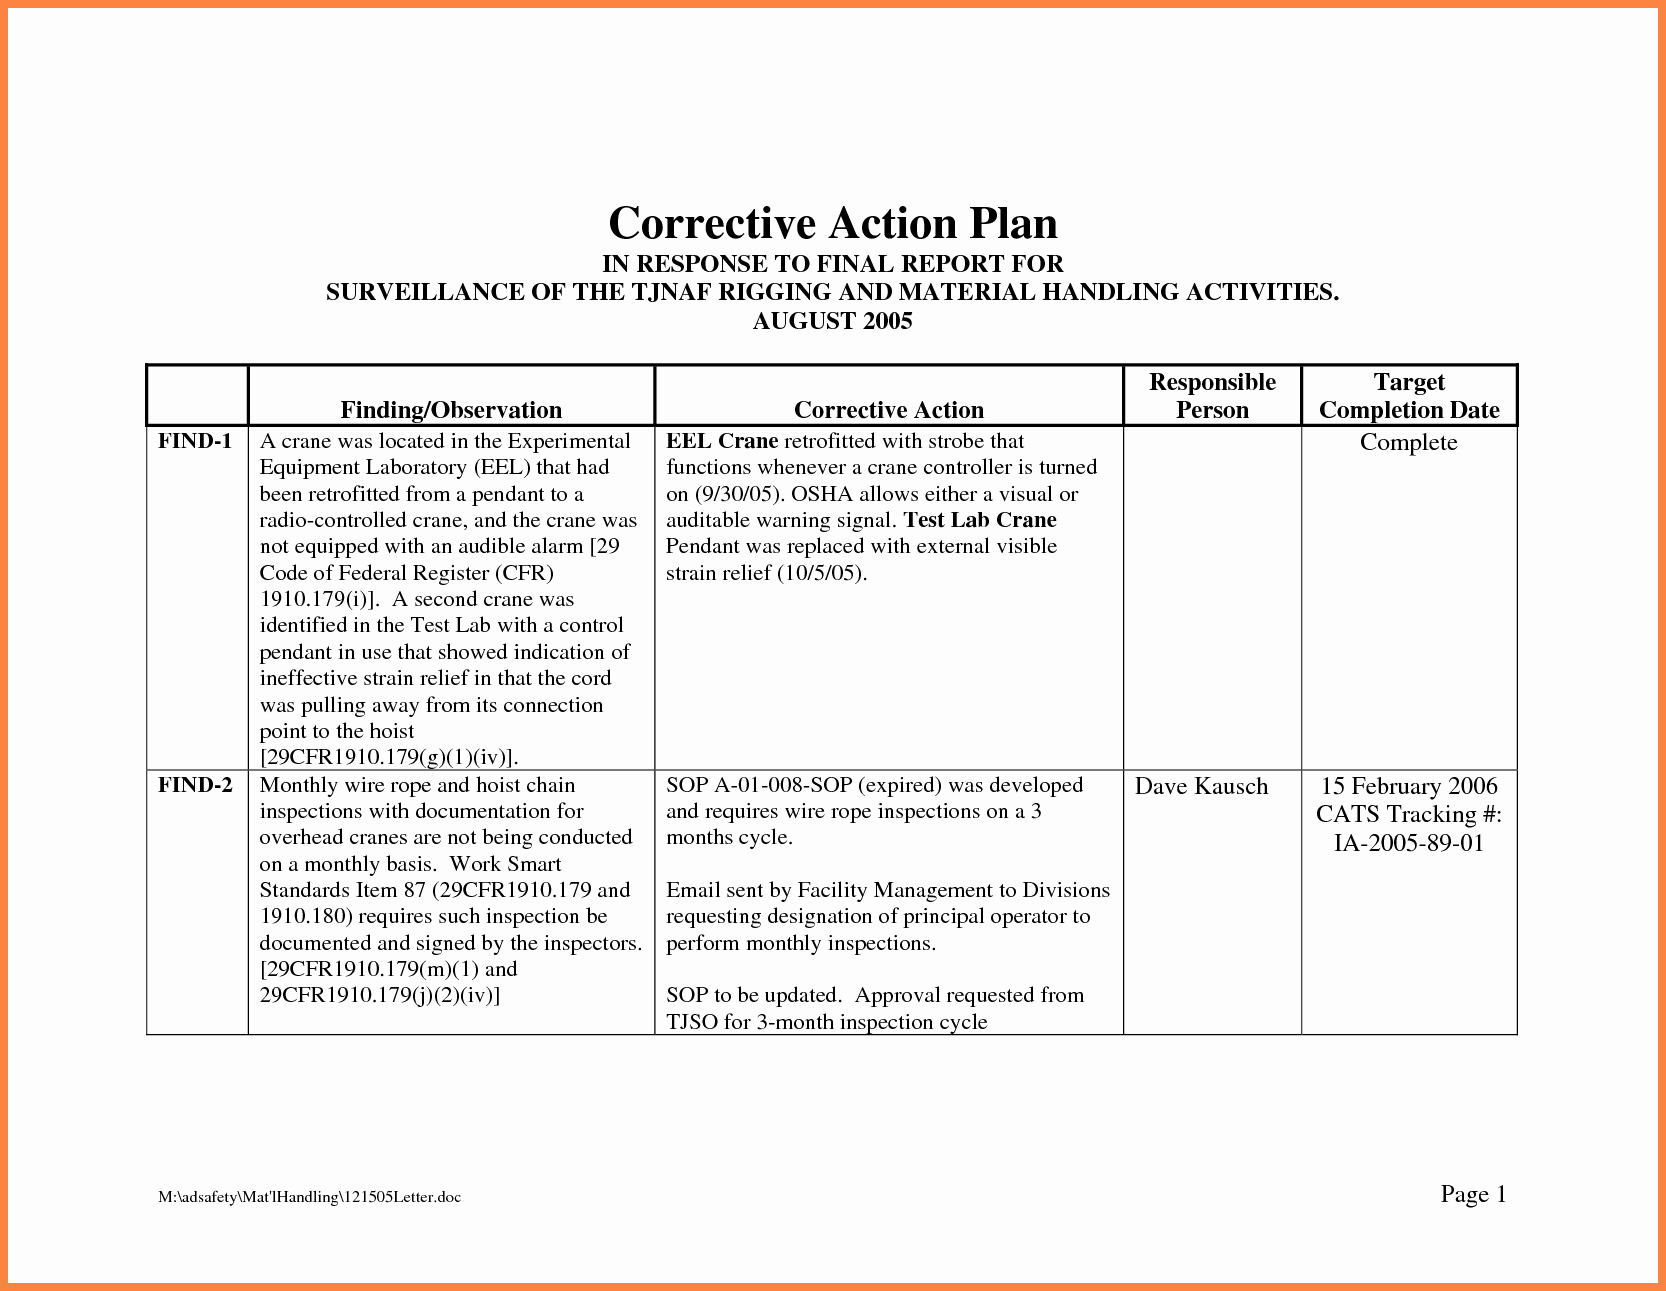 Corrective Action Plan Template Word New Corrective Action Plan Template